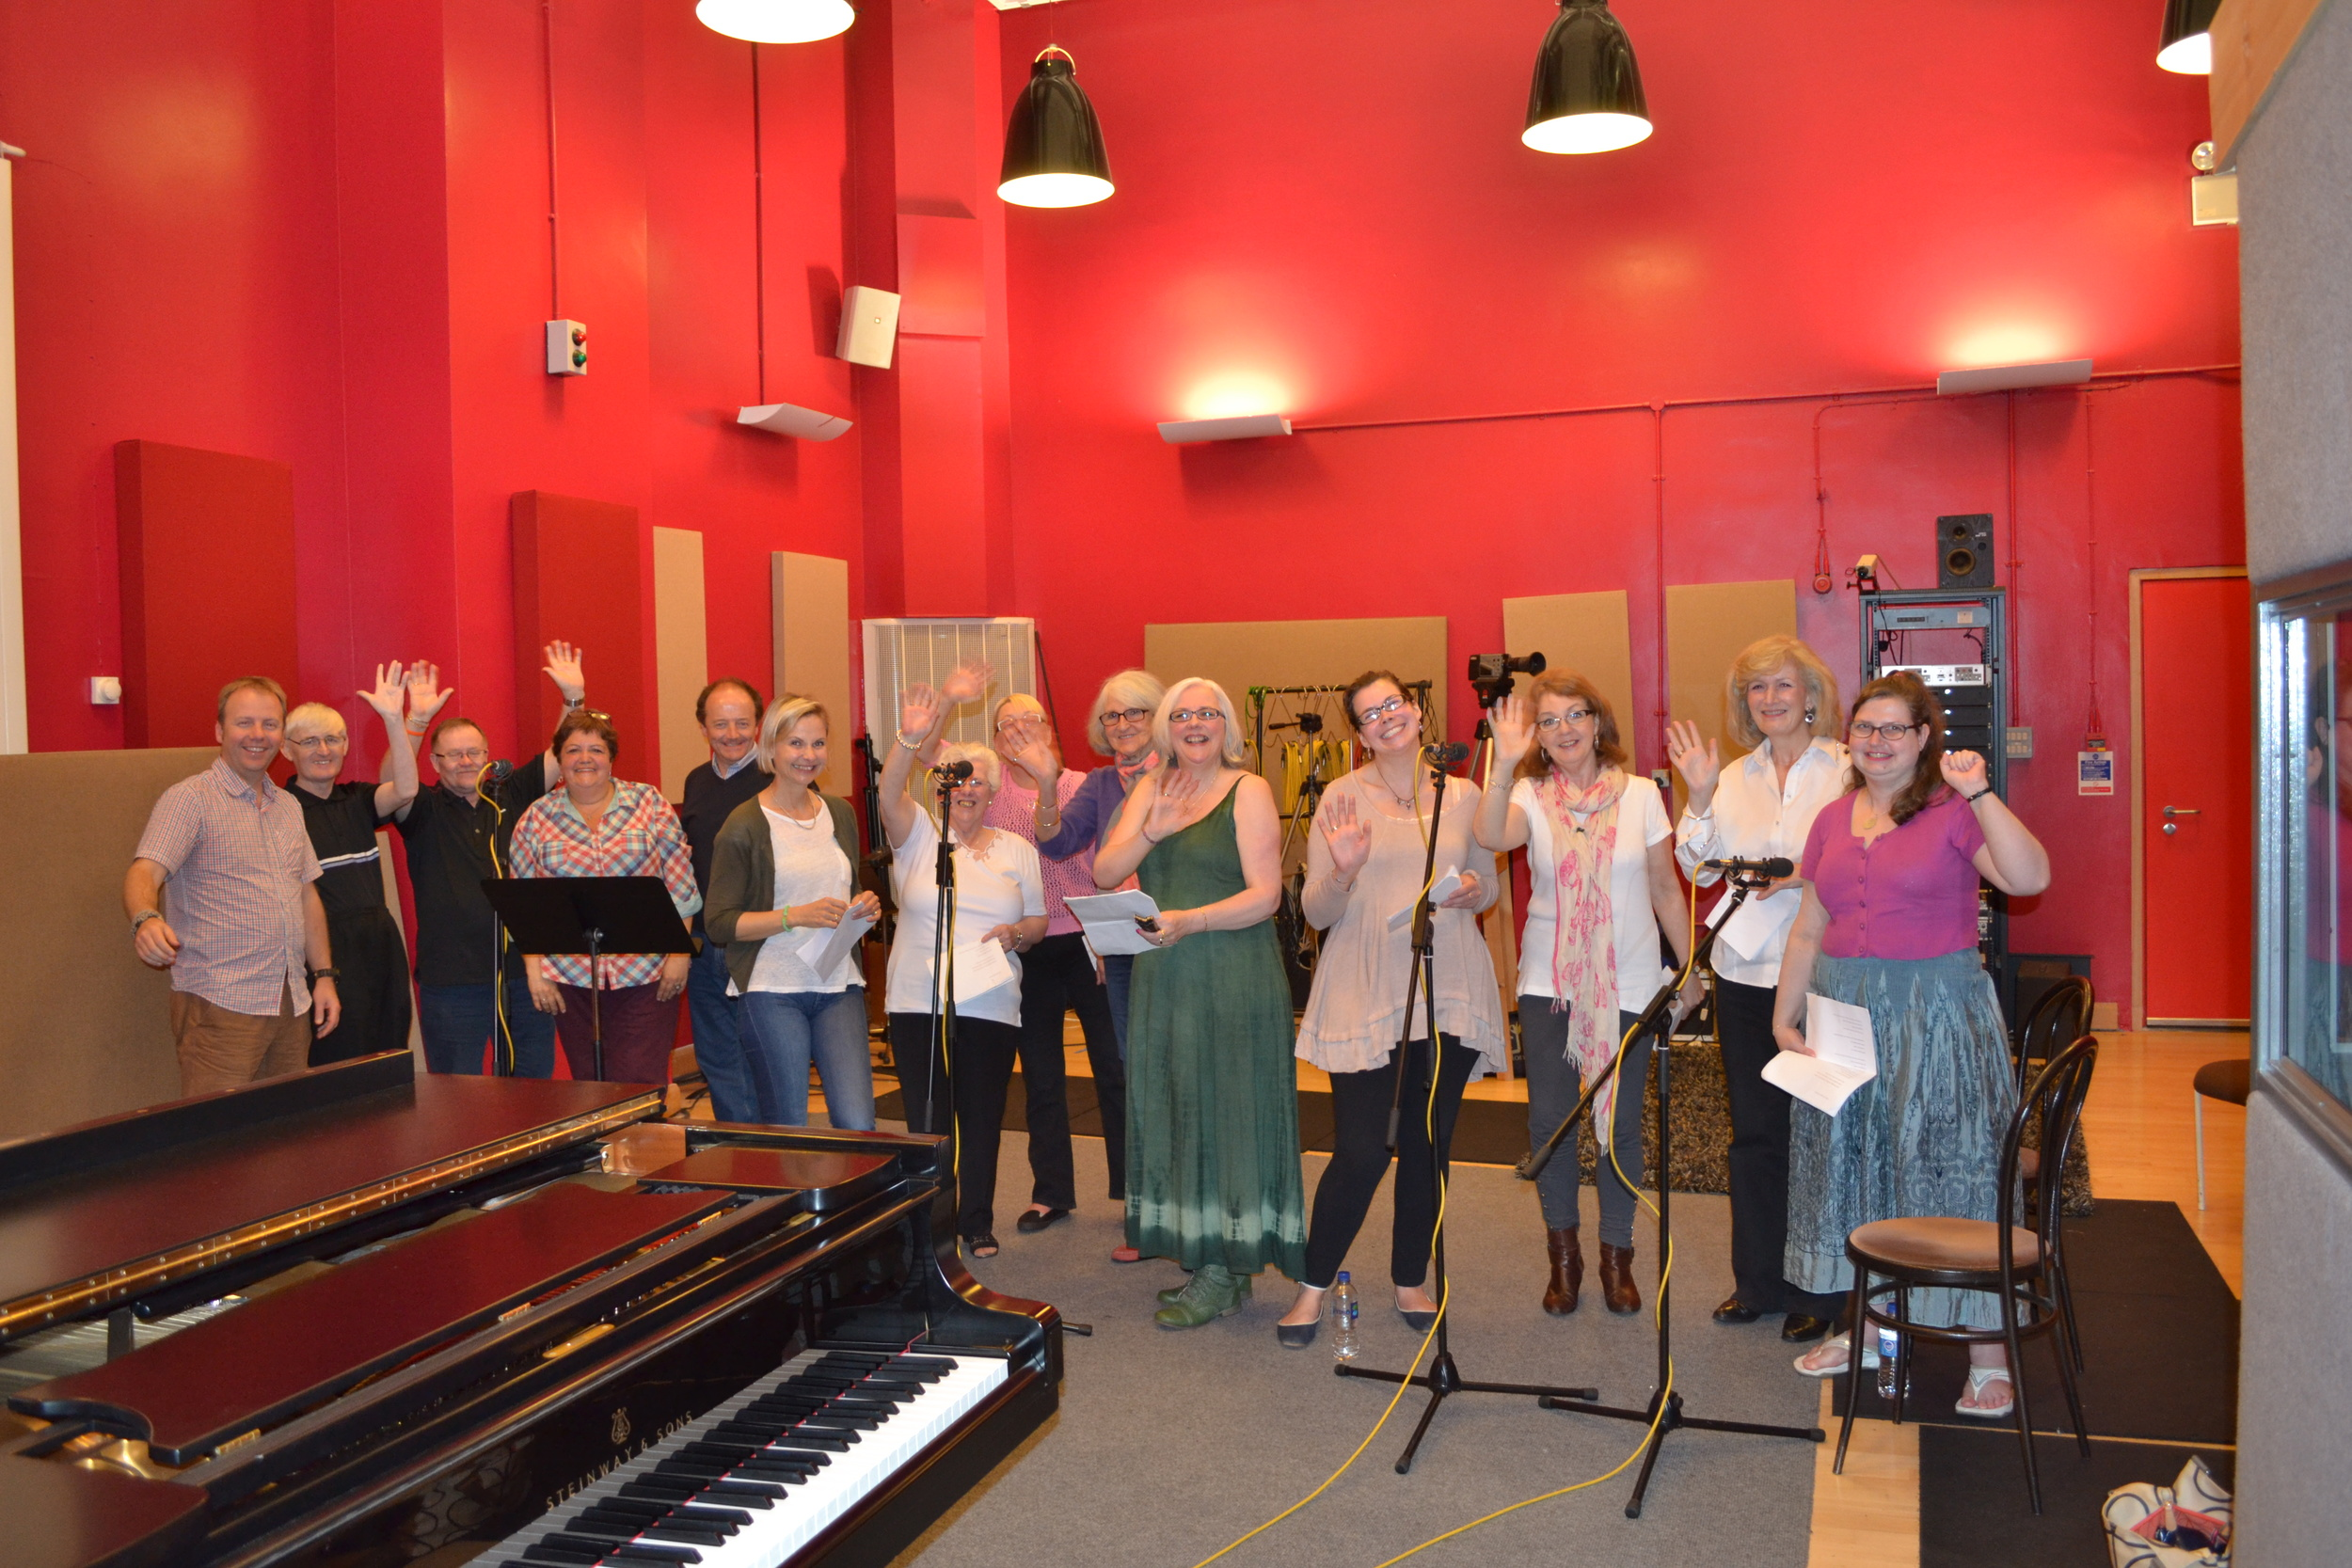 Maggie's Choir recording at The Royal Conservatoire Of Scotland